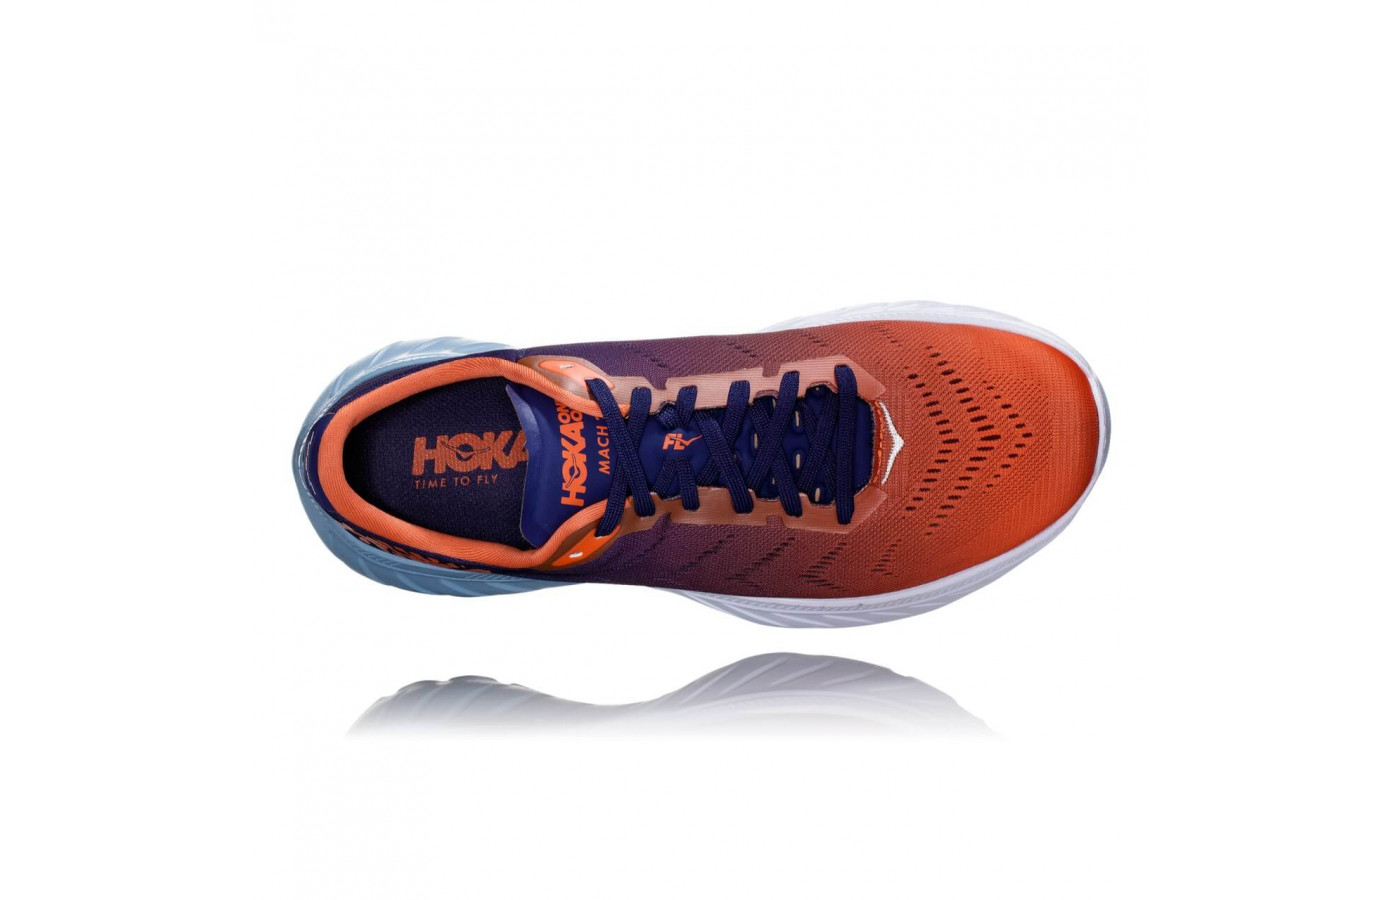 Hoka One One Mach 2 top